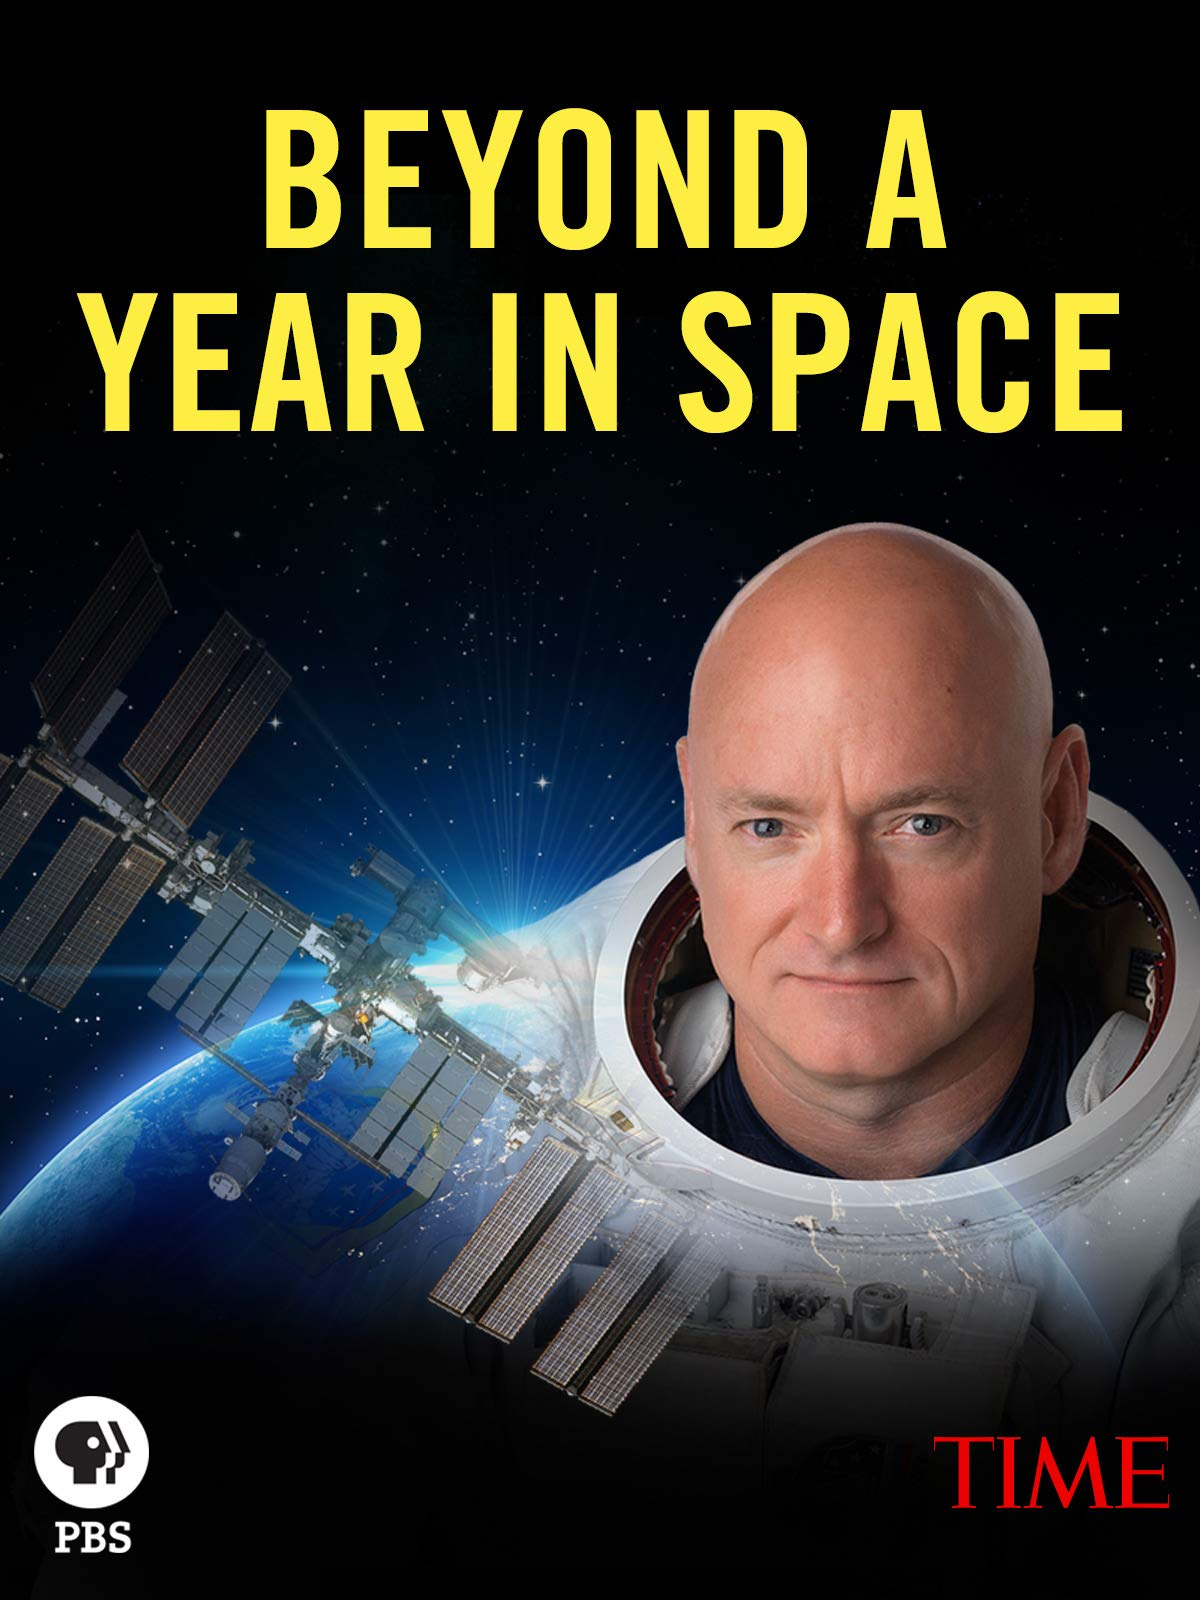 Beyond A Year in Space